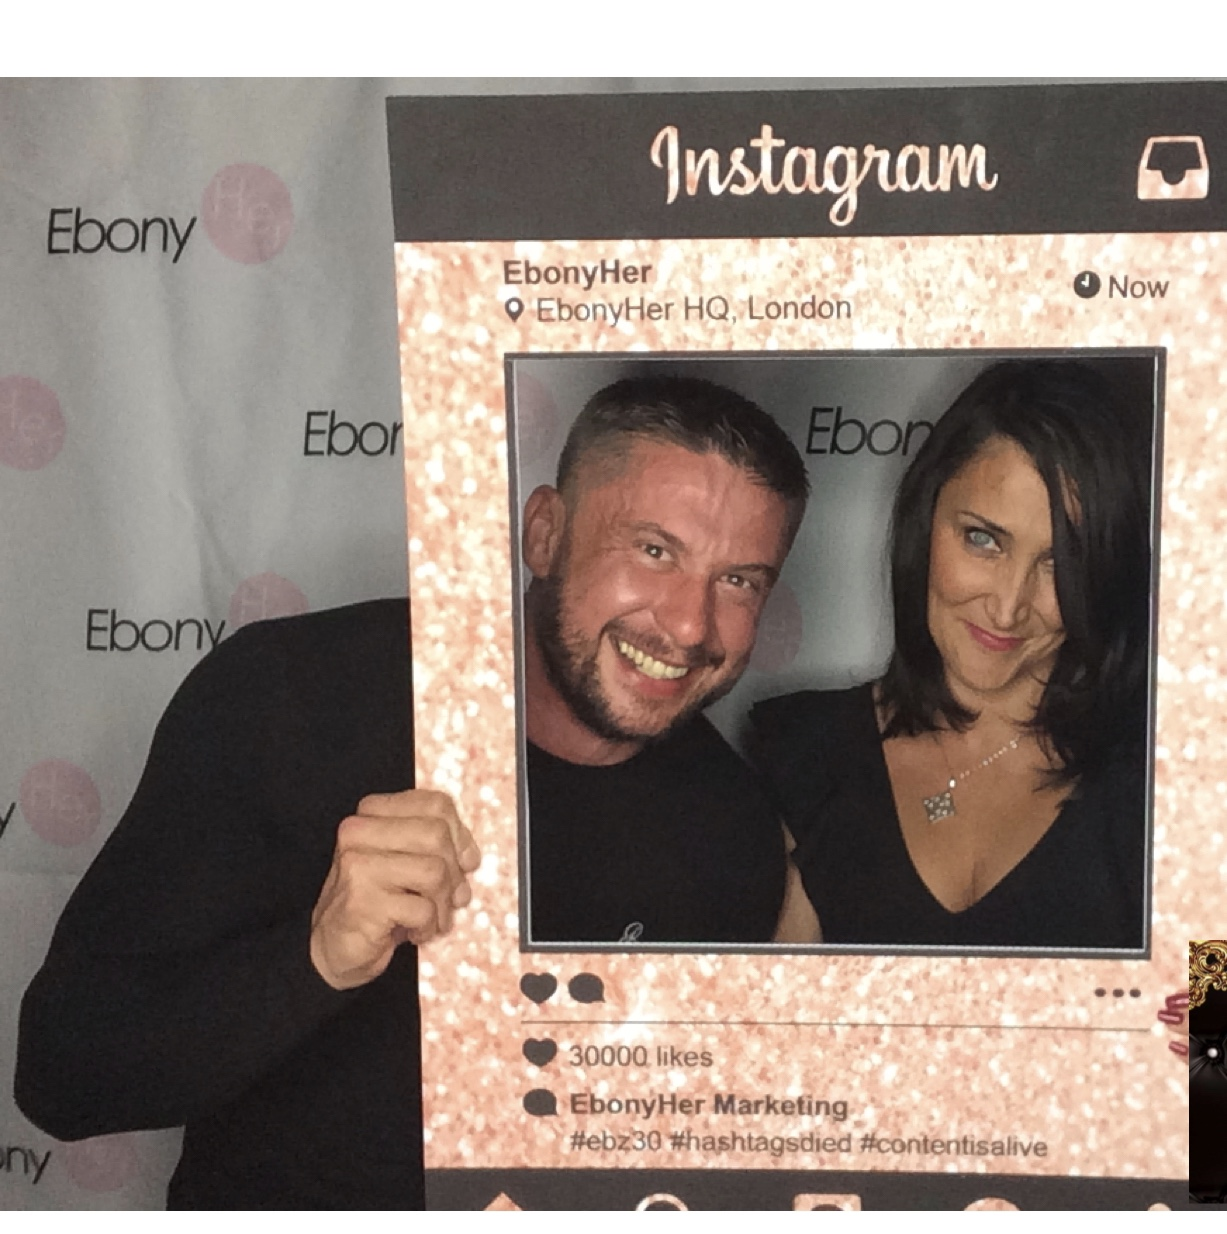 Instagram frame with Agnes and Peter at event